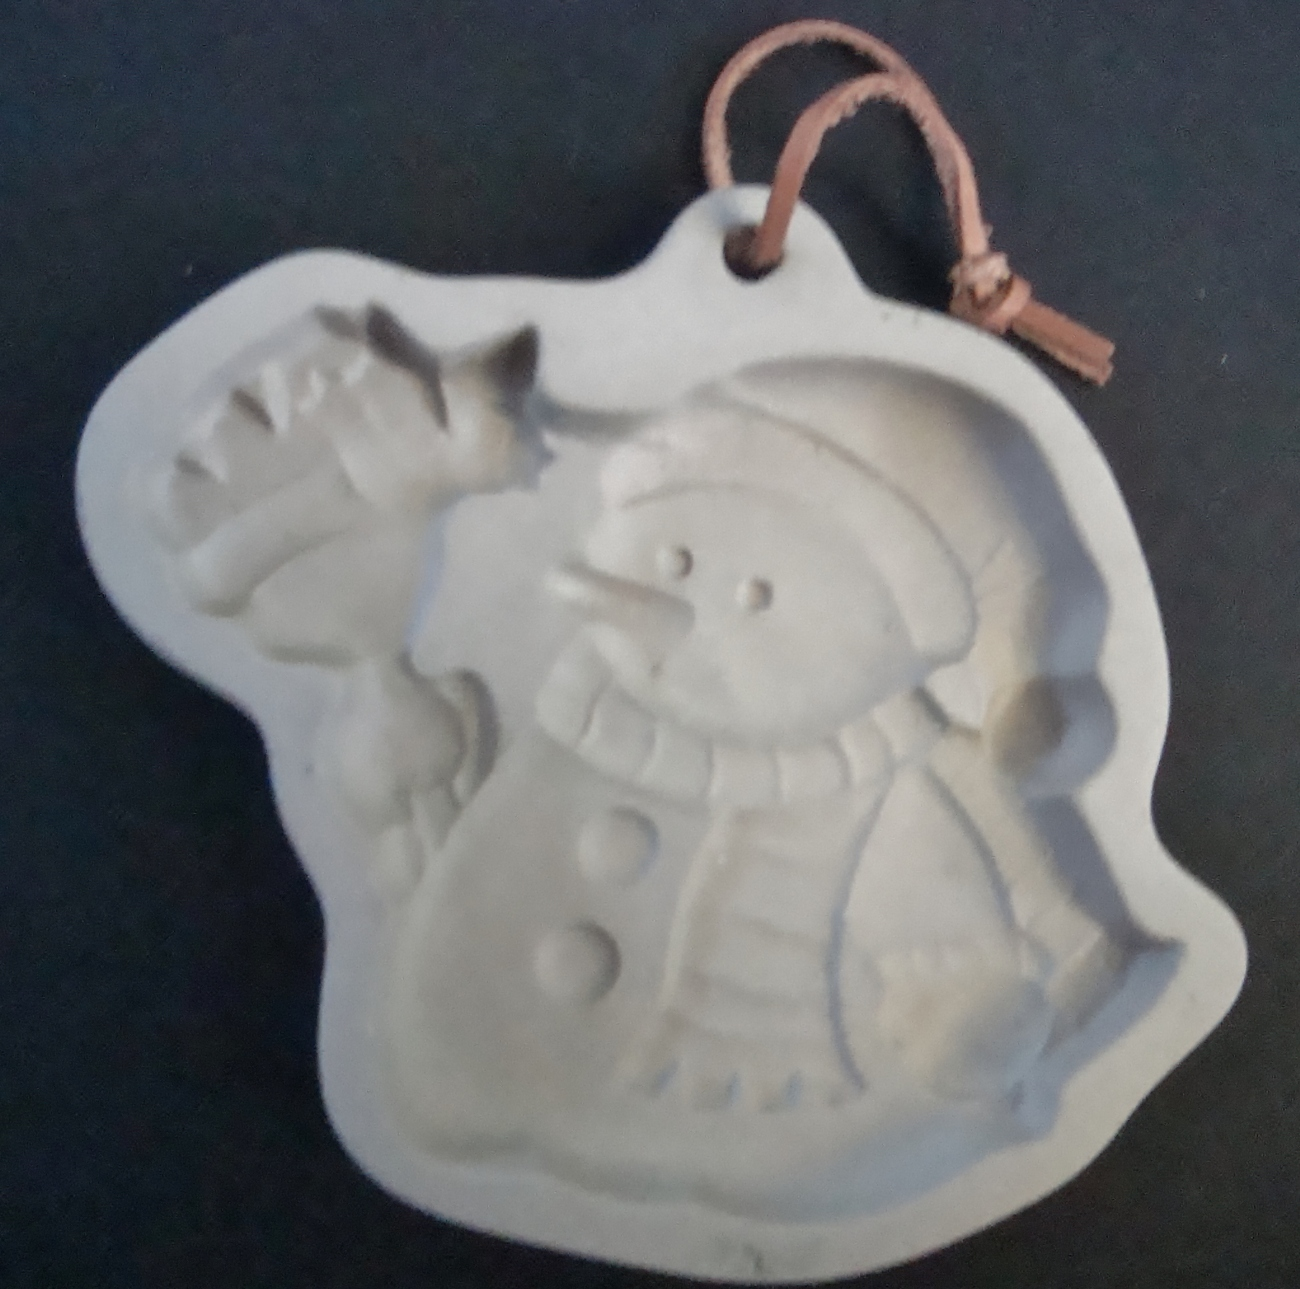 Snowman Cookie Mold, unmarked